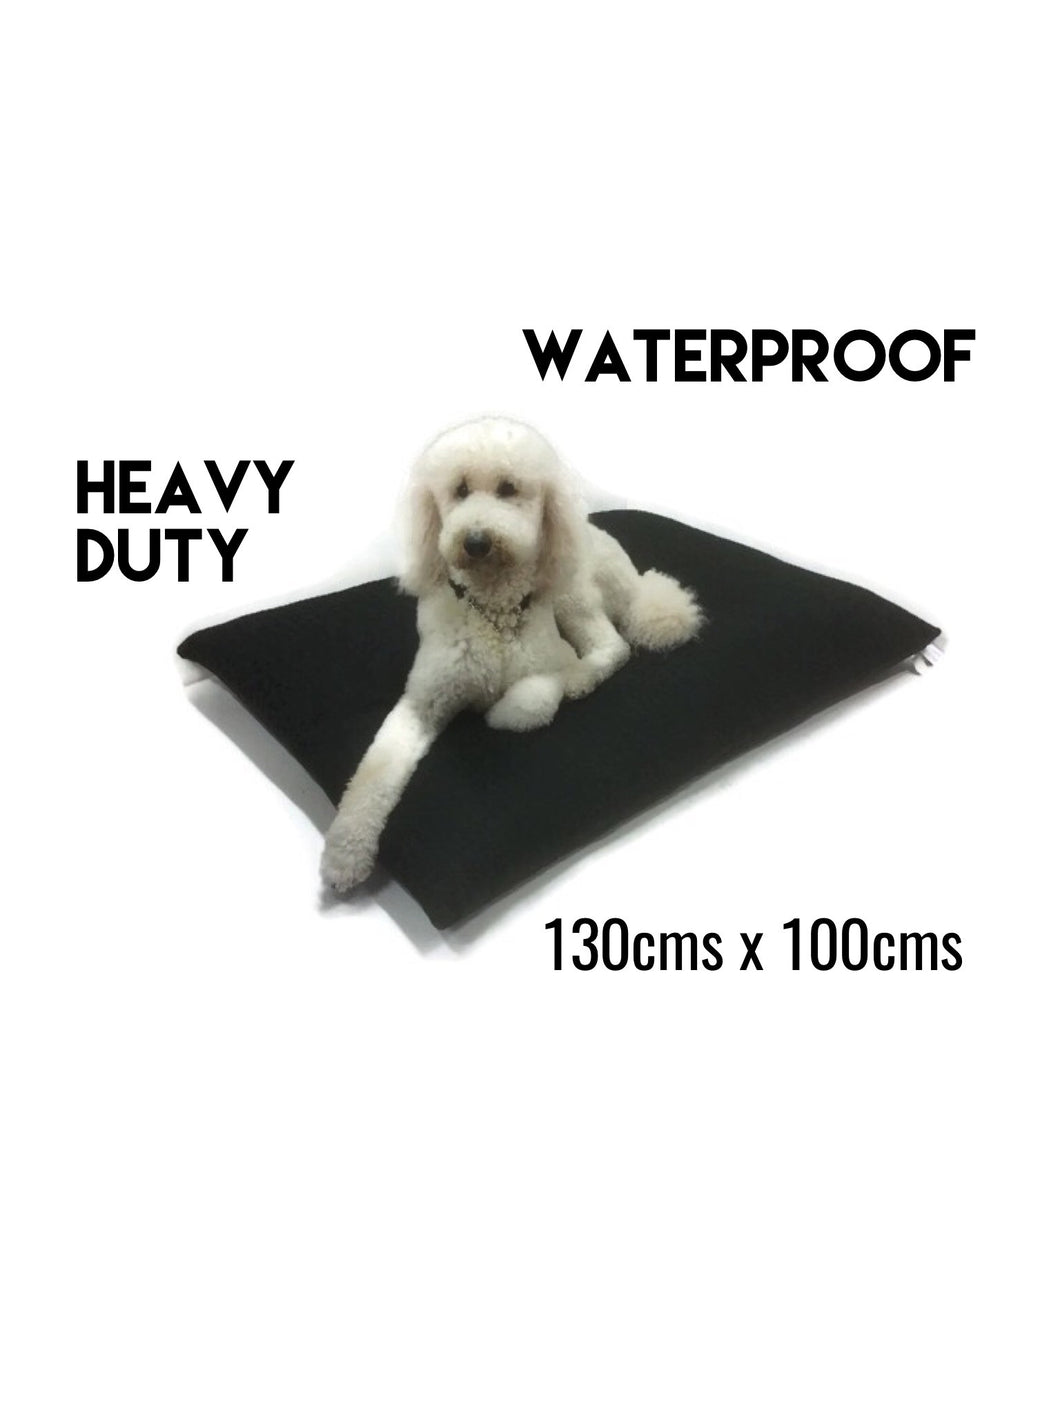 Waterproof tough diy dog bed cover fill it yourself kennel bed waterproof tough diy dog bed cover fill it yourself kennel bed puppy mastiff solutioingenieria Choice Image